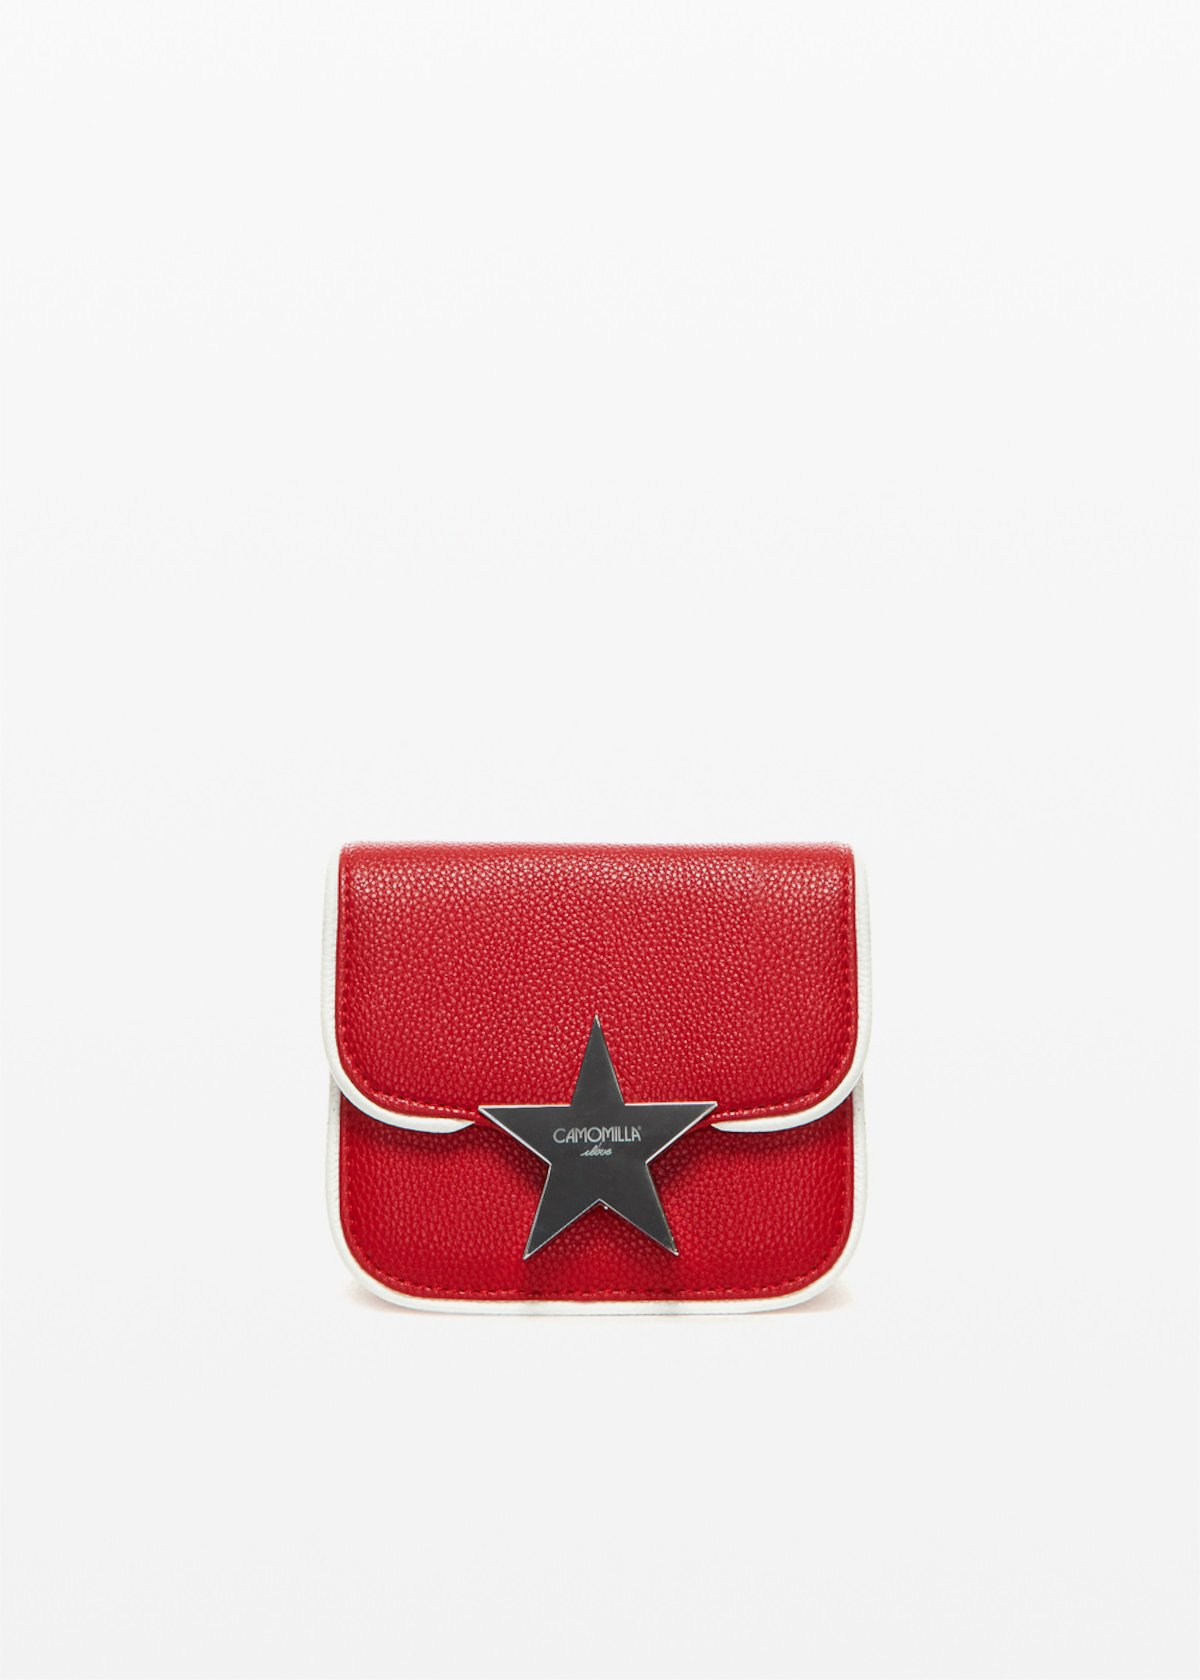 Burpies clutch bag with star clasp - Tulipano / White - Woman